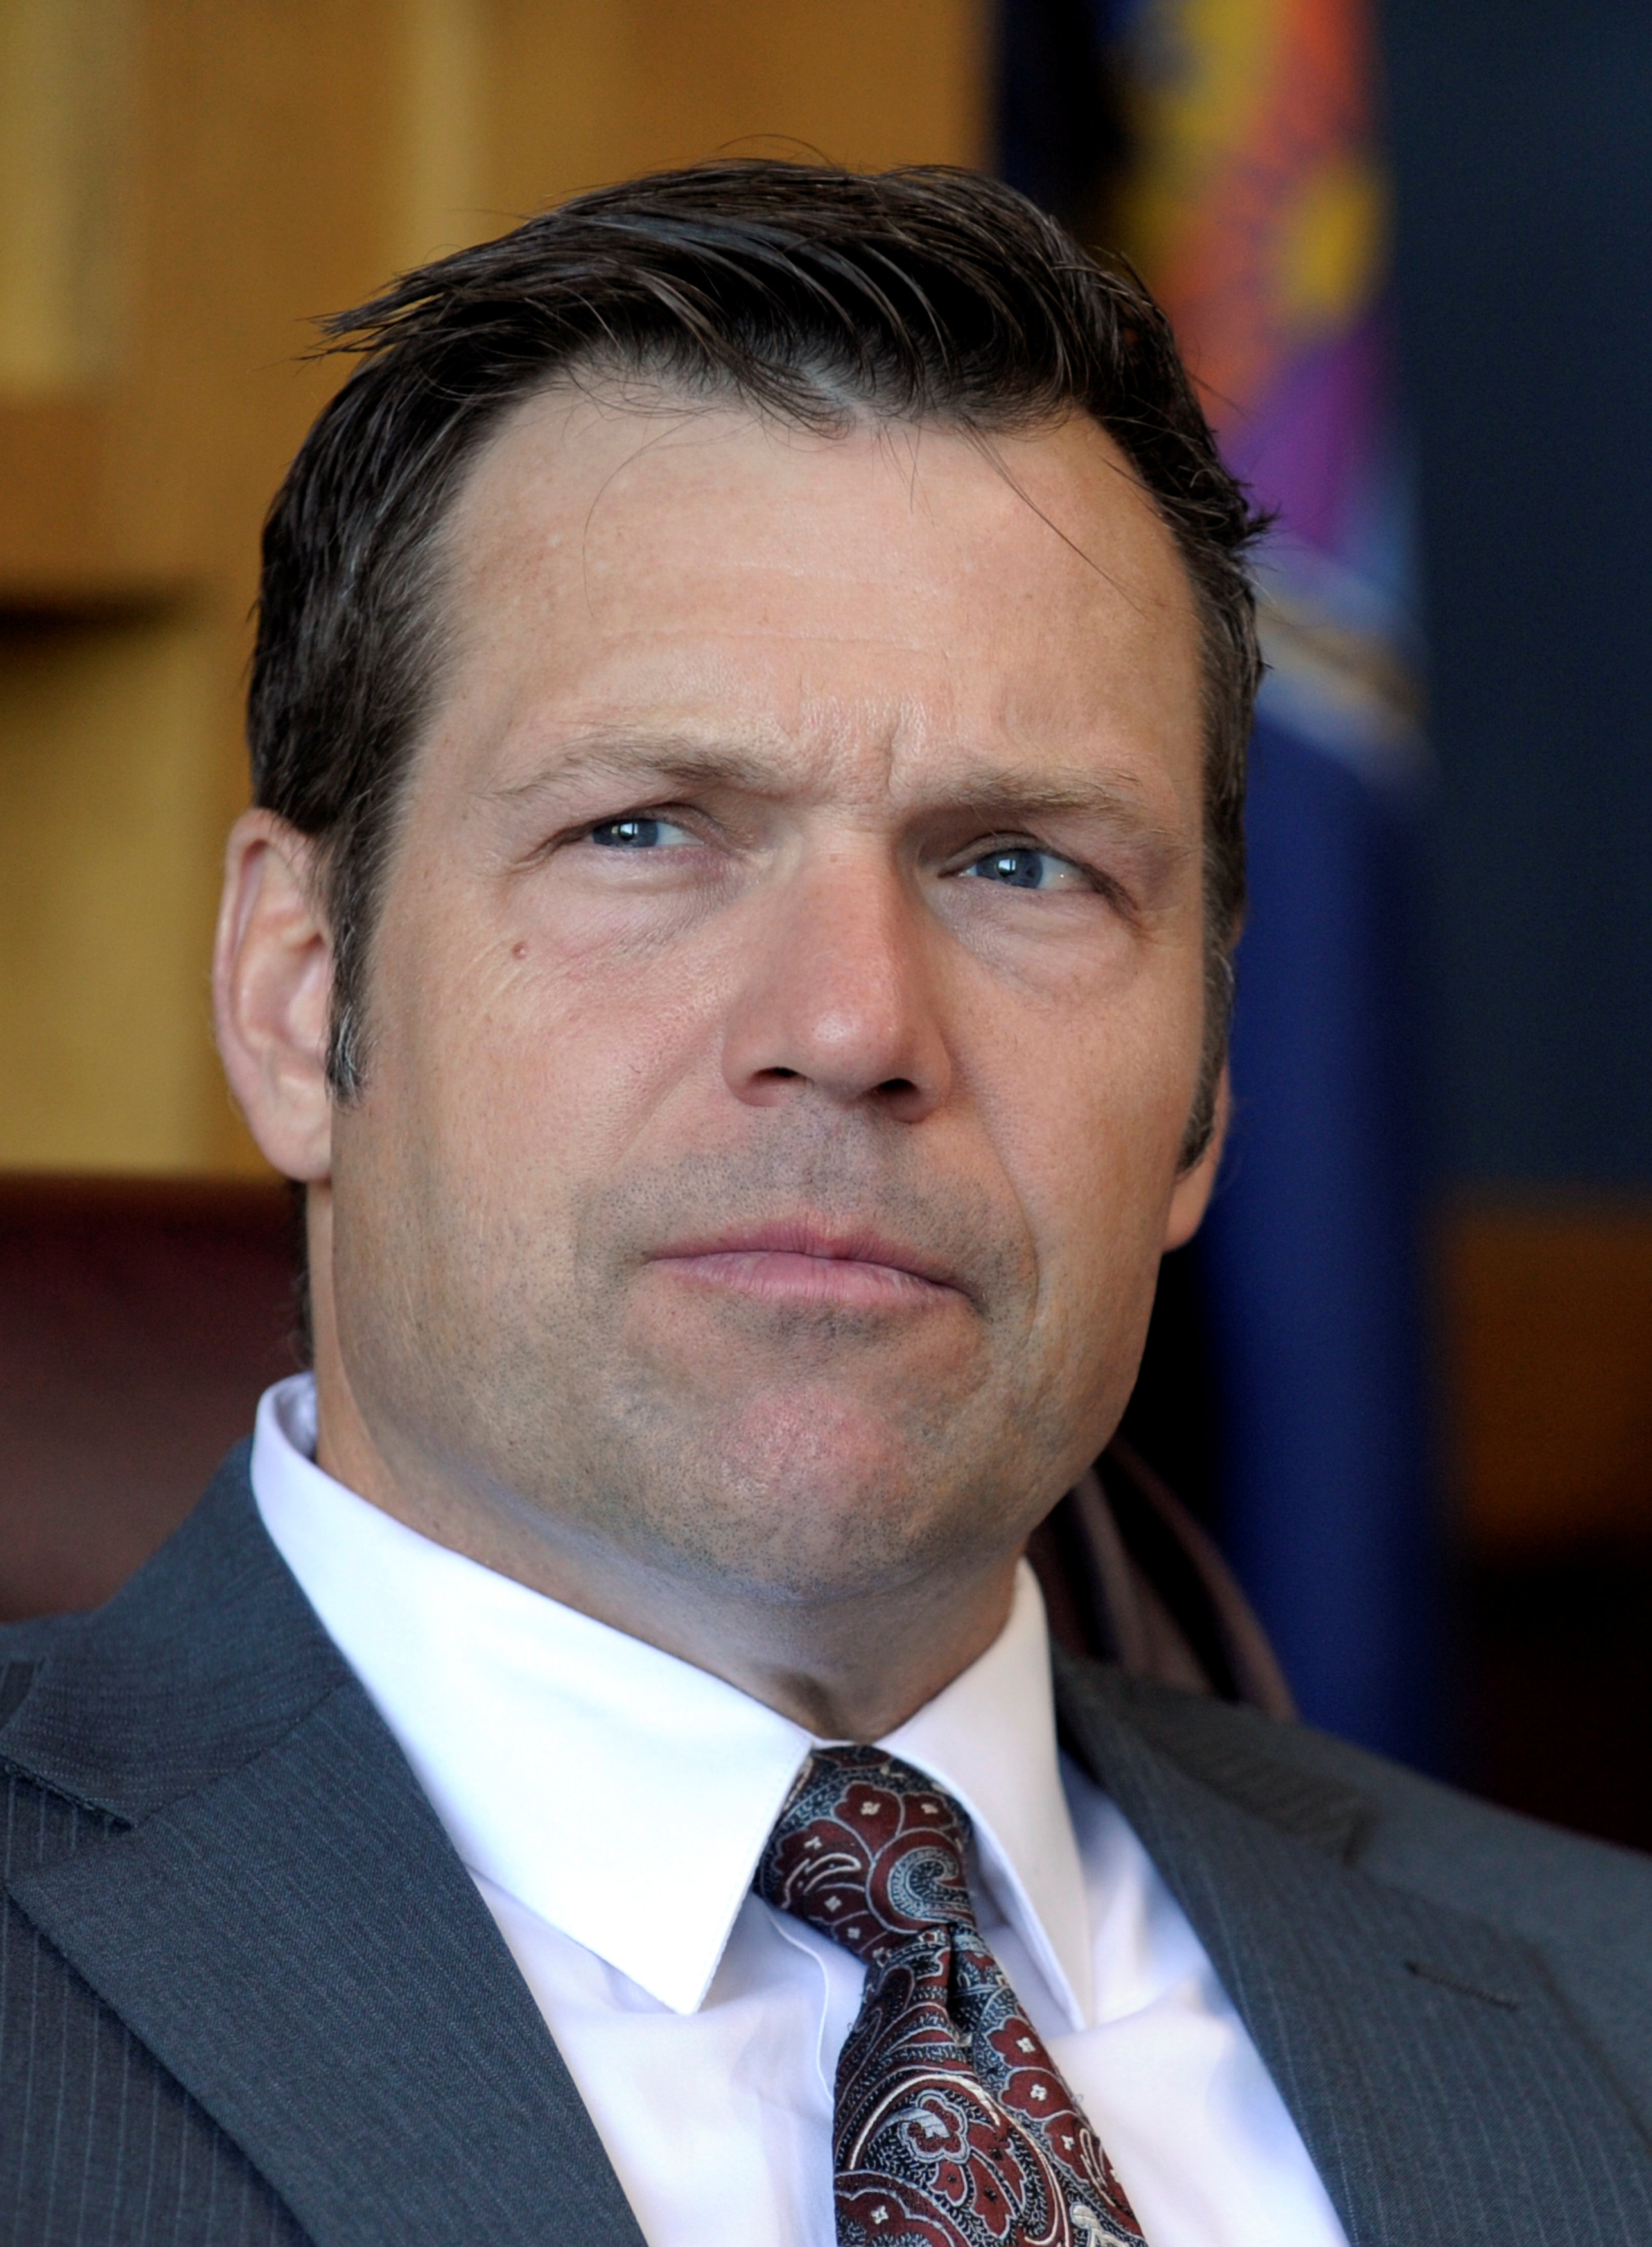 Kansas Secretary of State Kobach looks on as he talks about the Kansas voter ID law in his Topeka, Kansas office